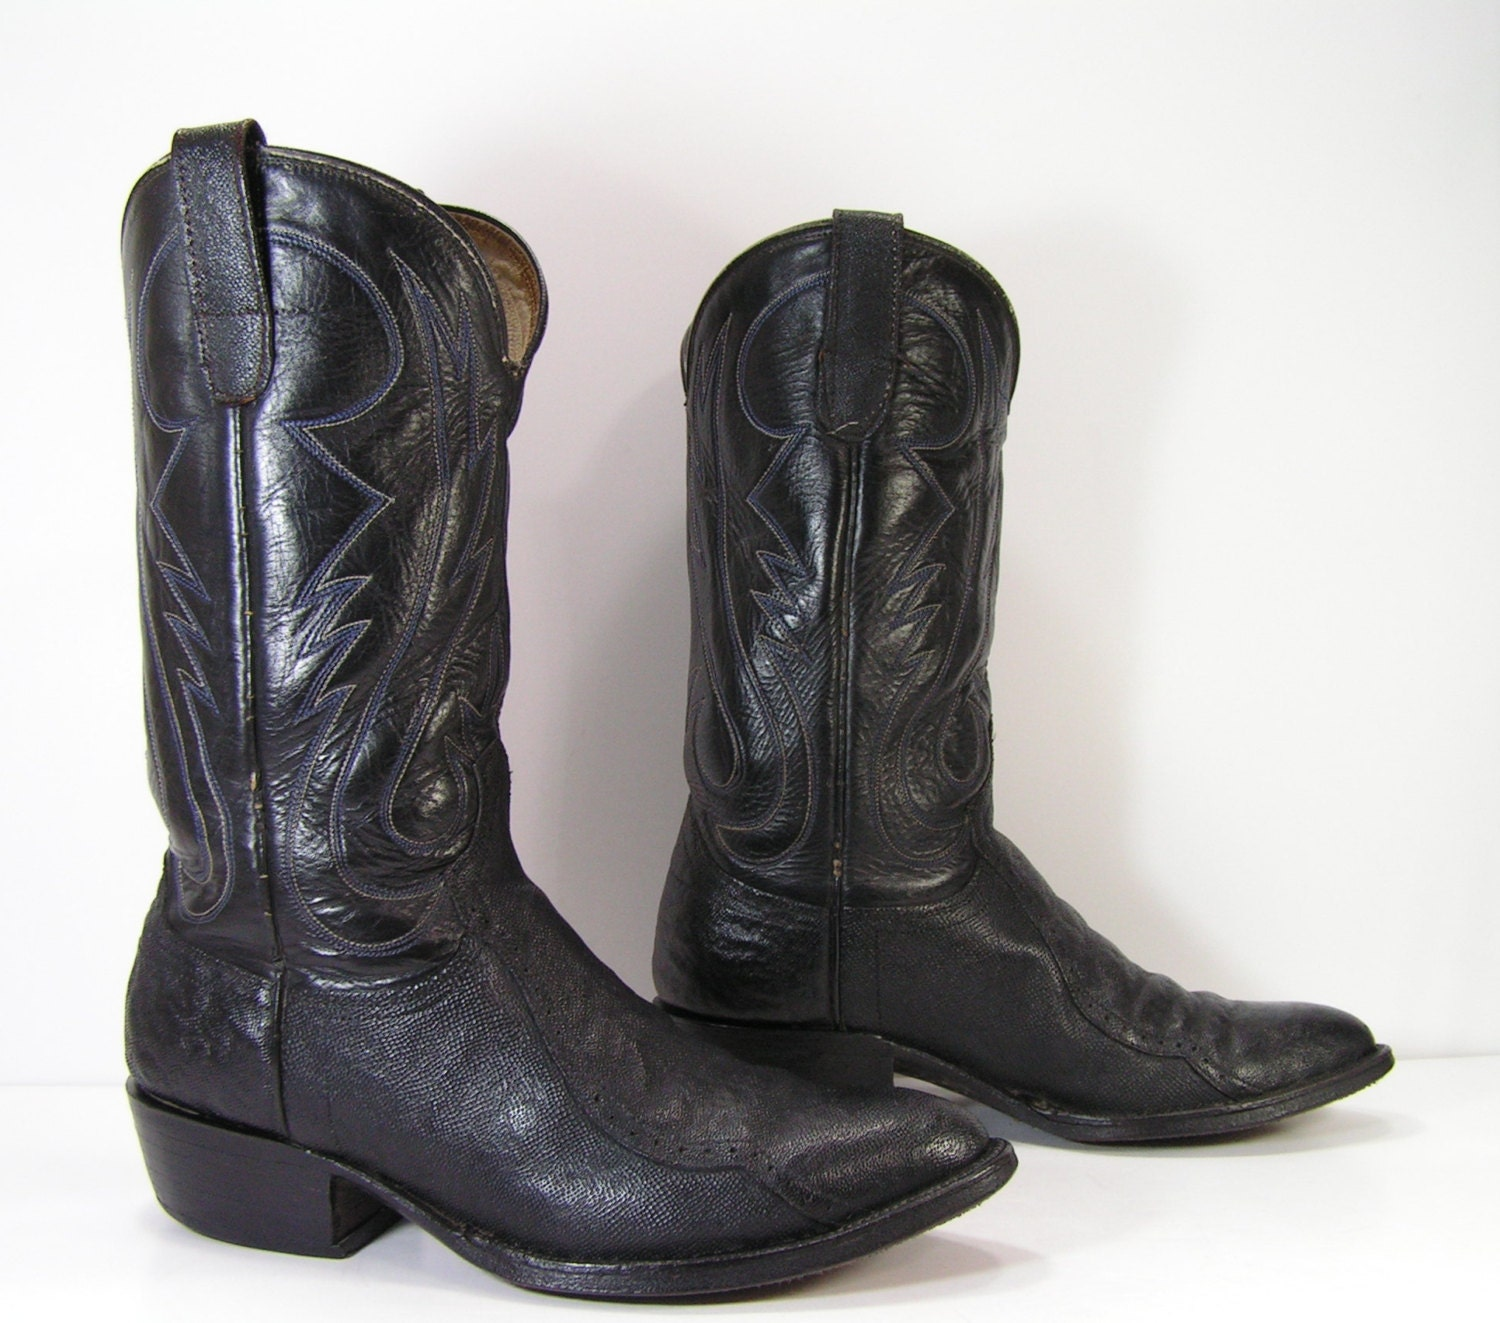 cowboy boots mens 9 d black shark skin western leather cowtown